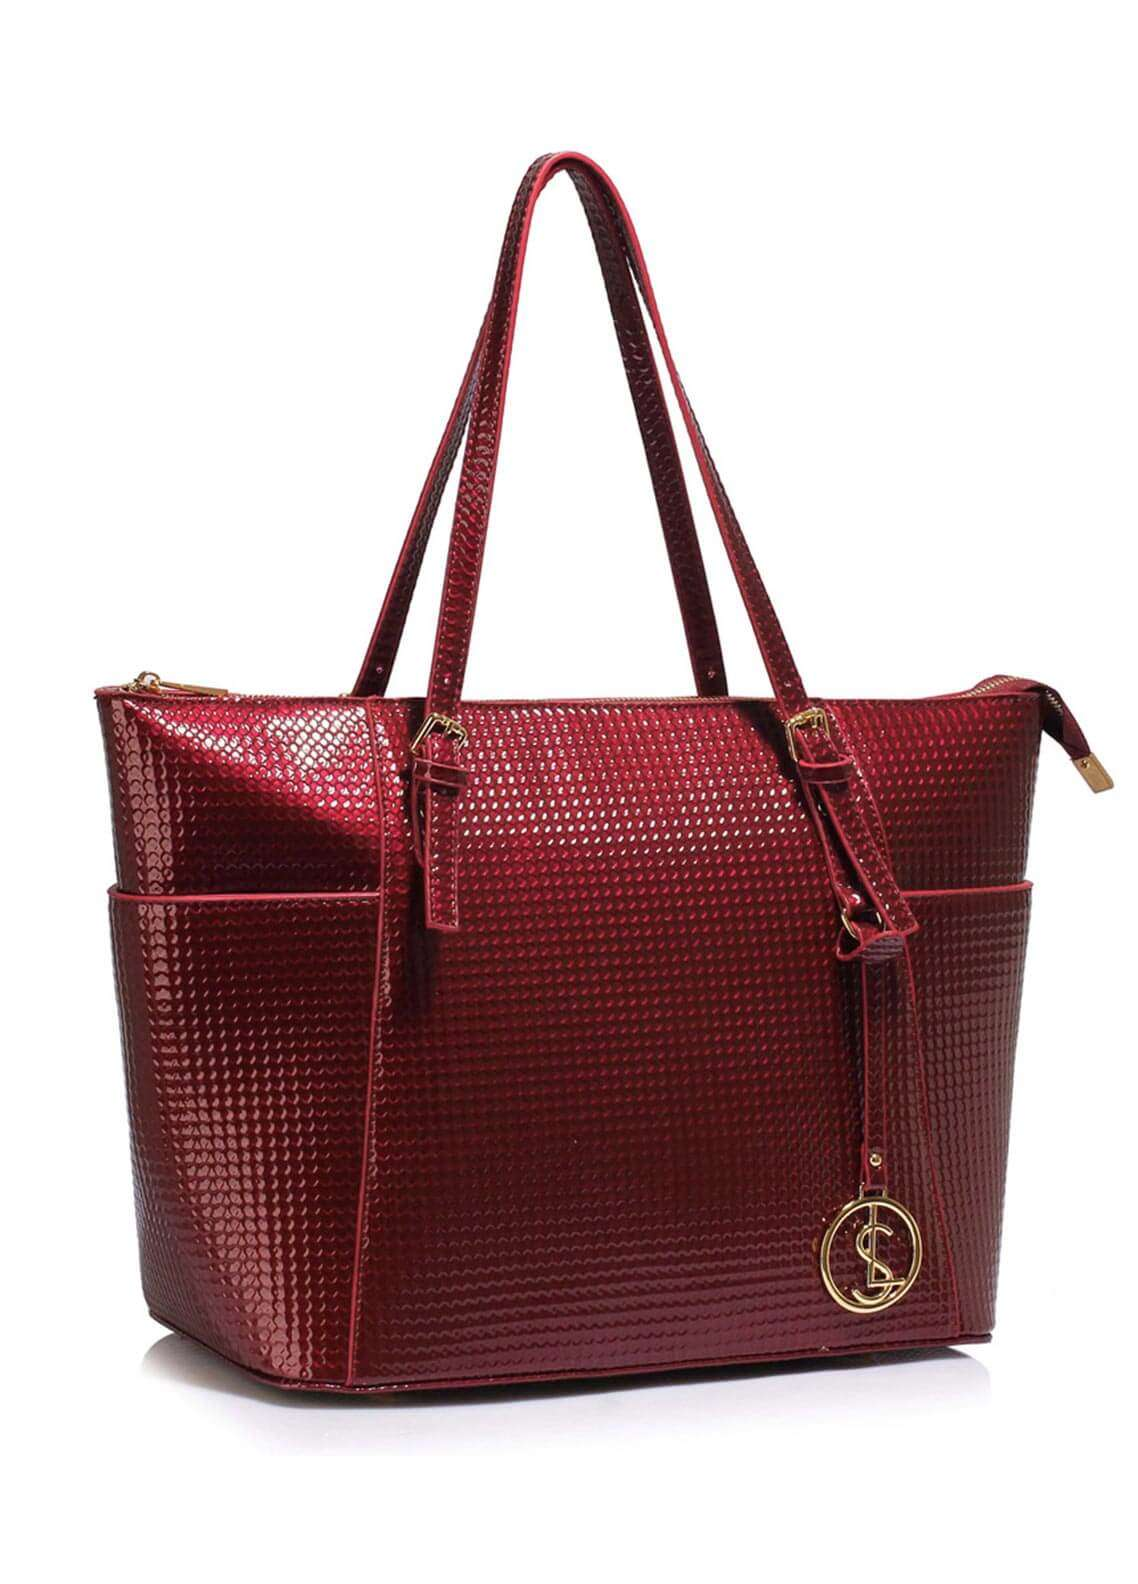 Leesun London  Faux Leather Tote  Bags for Woman - Burgundy